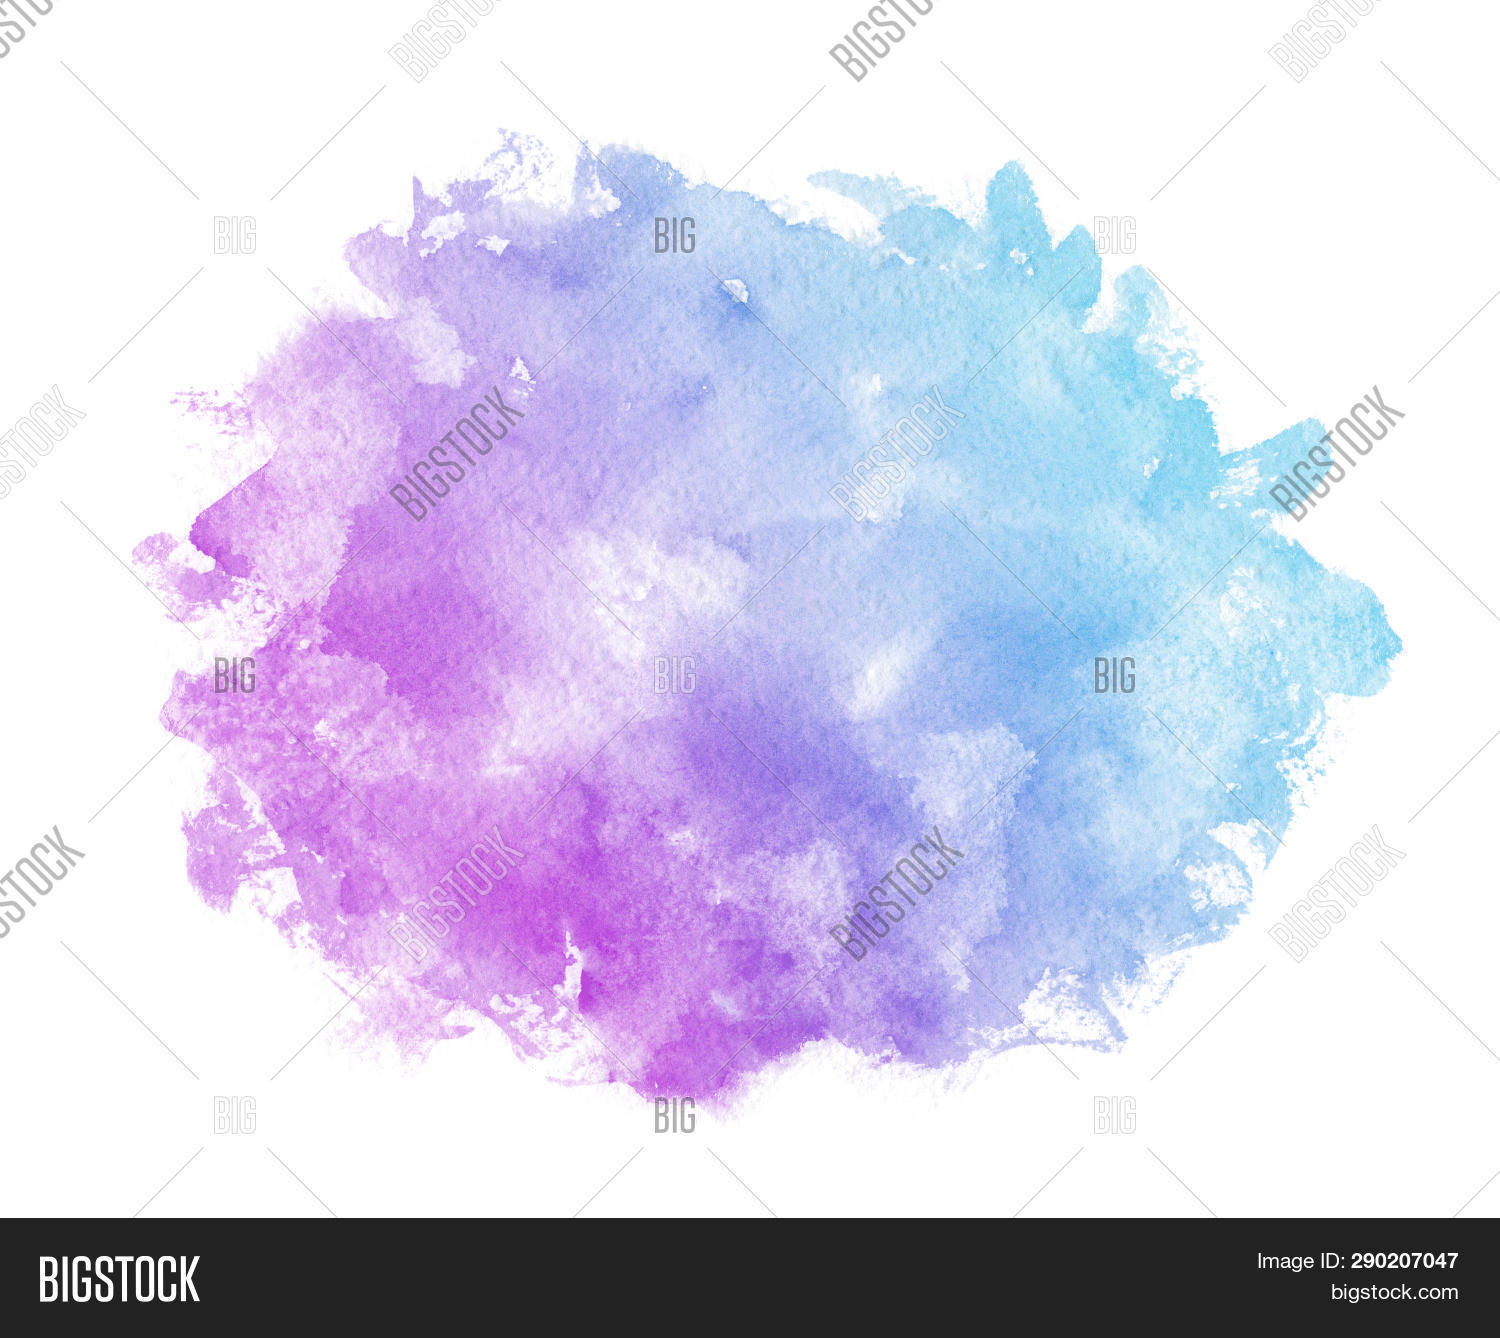 Abstract Pink Blue Image Photo Free Trial Bigstock